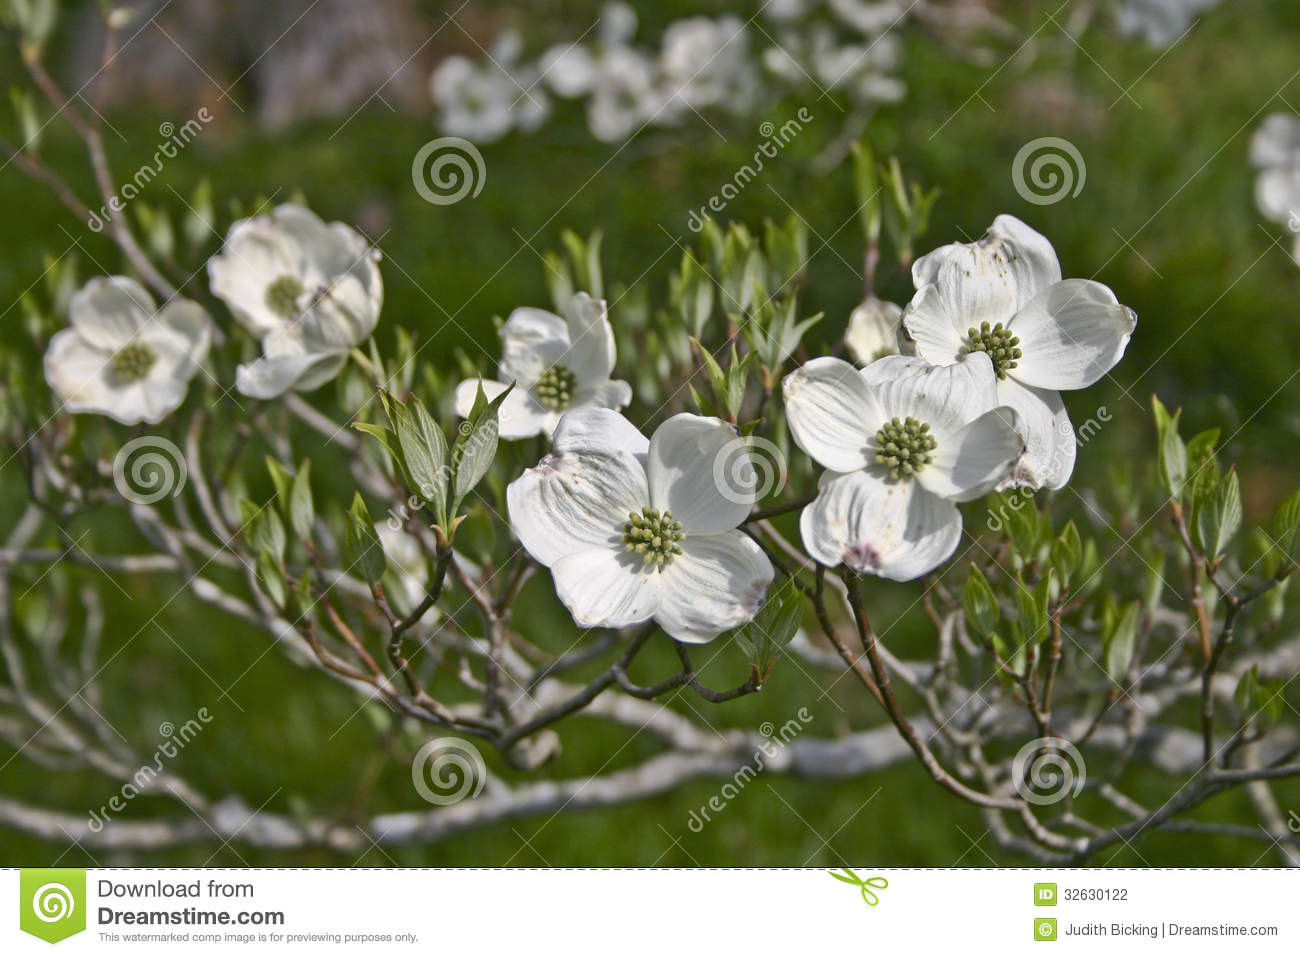 Close up of a branch of white dogwood tree flowers in early spring.